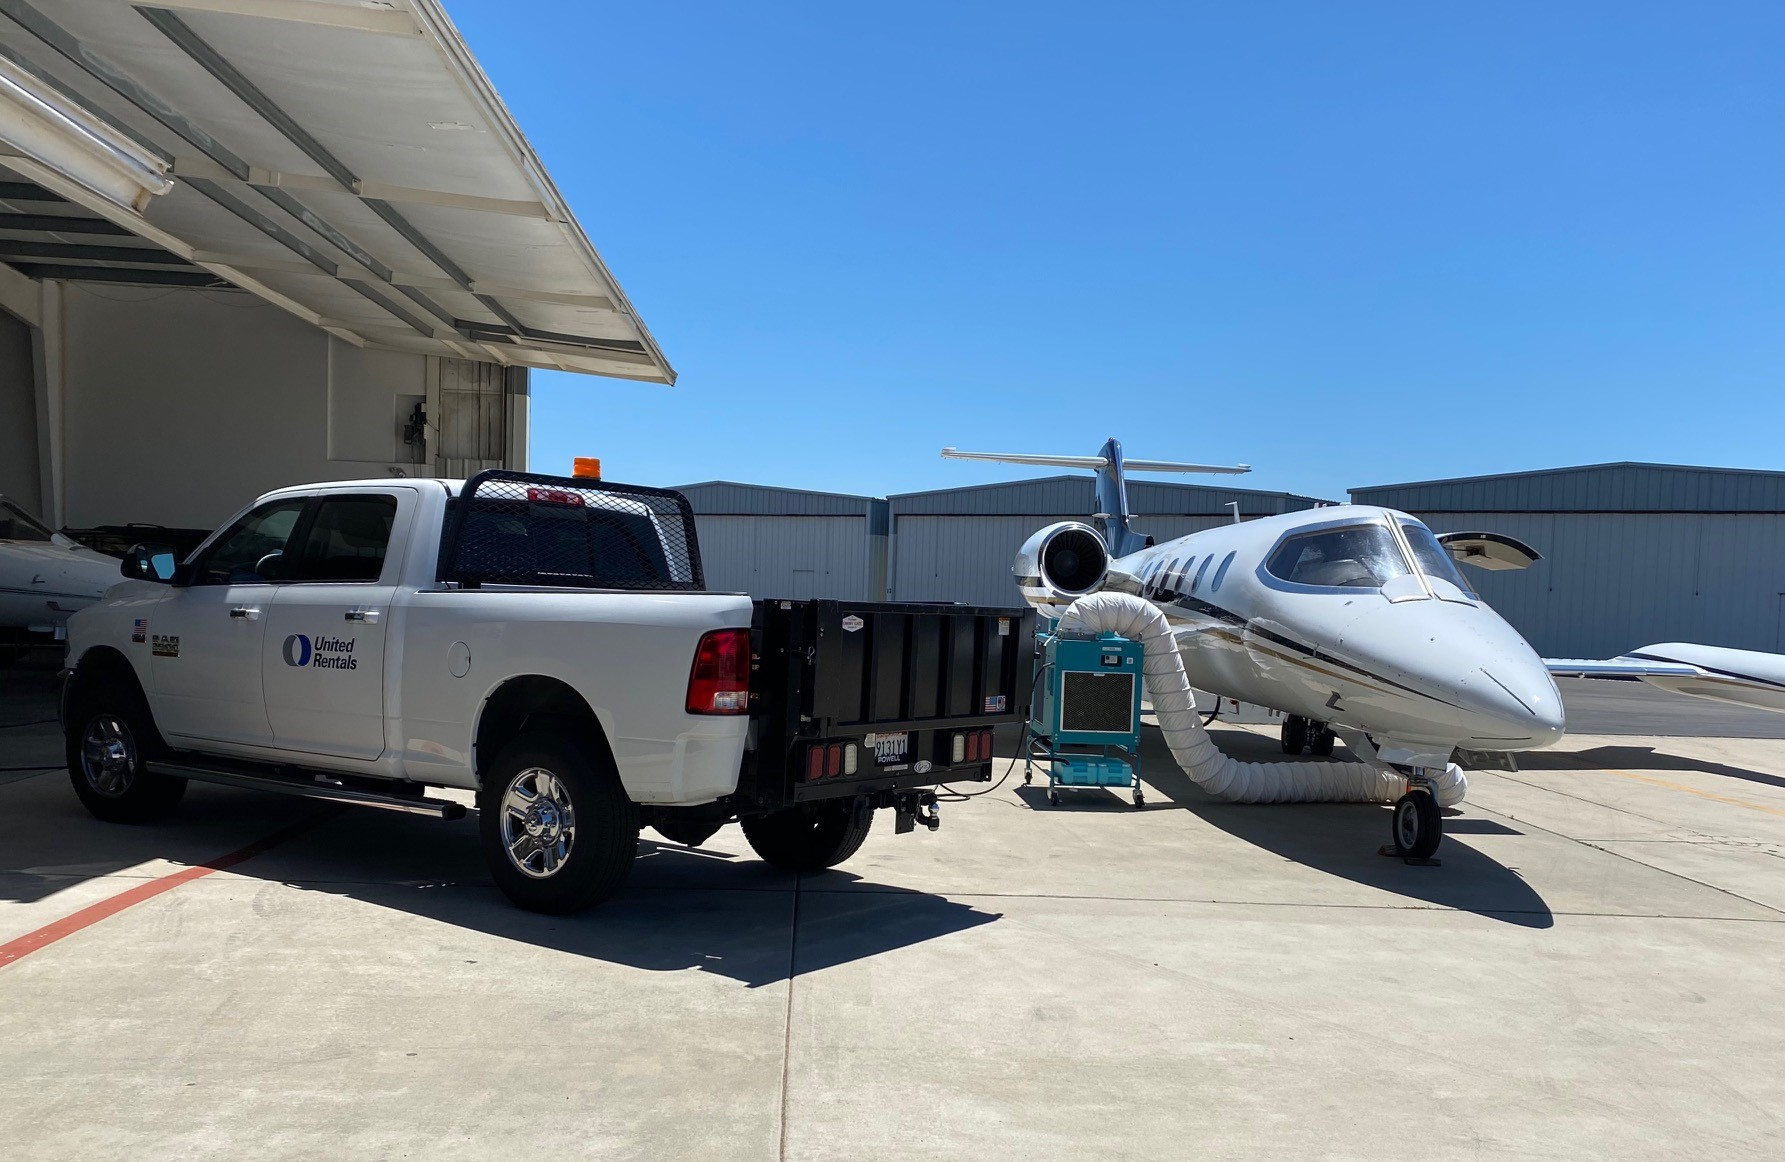 Truck parked outside a hanger next to a spot cooler being used outside a corporate jet